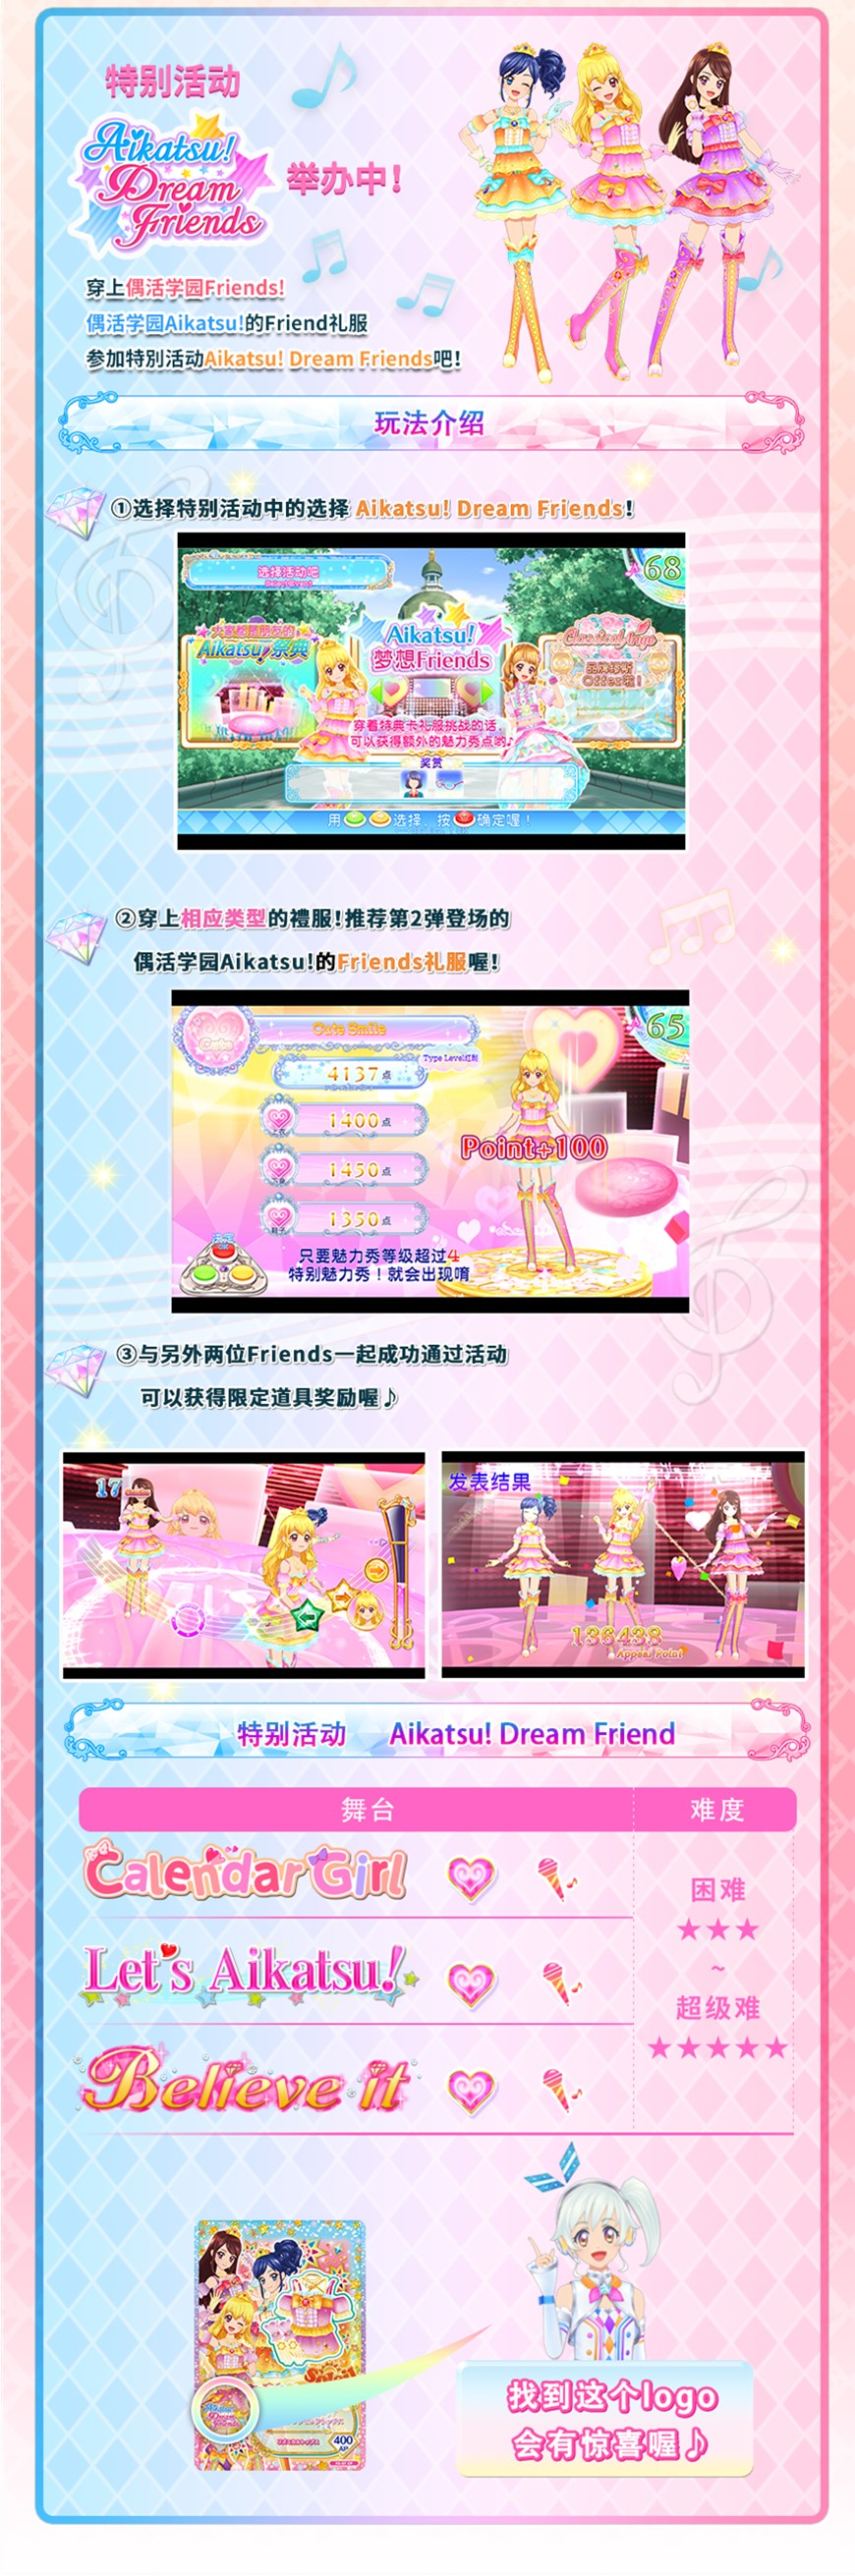 Aikatsu_ Dream Friends CN_副本.jpg